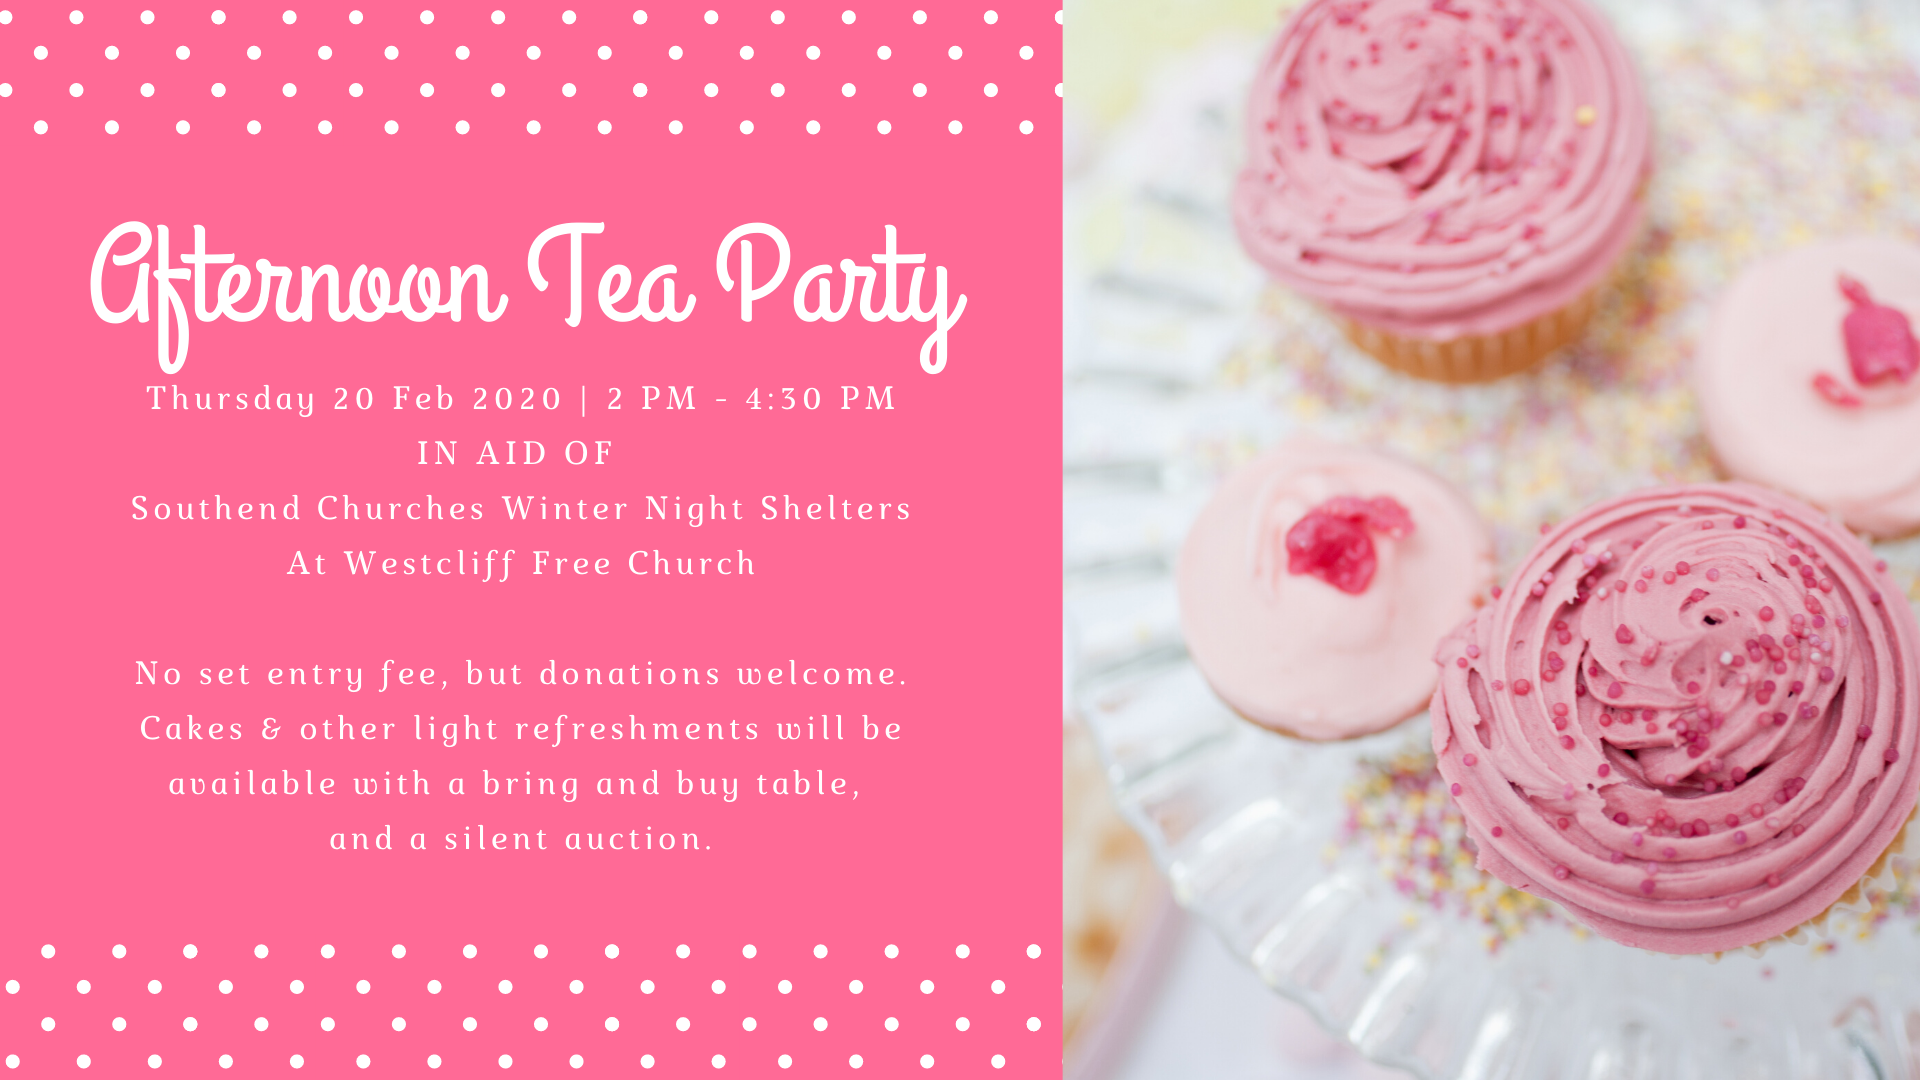 Afternoon Tea Party in aid of Southend Churches Winter Night Shelters